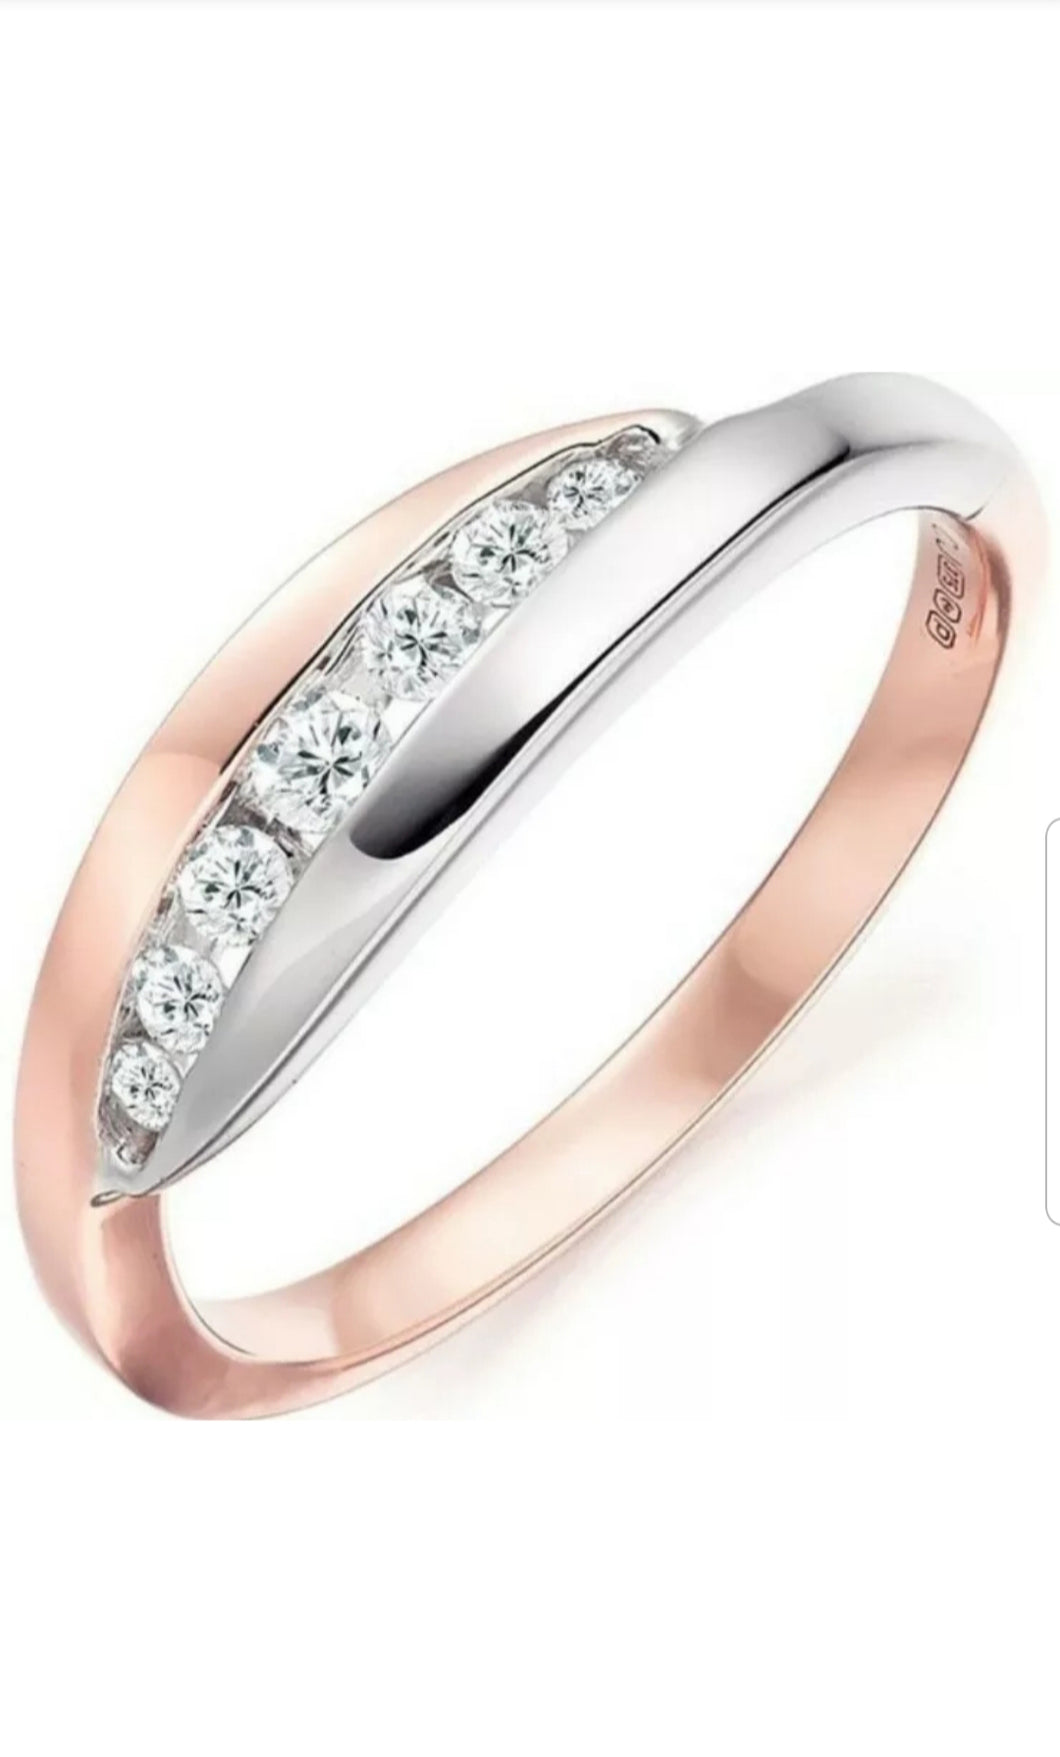 White Sapphire 925 Sterling Silver Rose Gold Plated 18k Ring Size 10